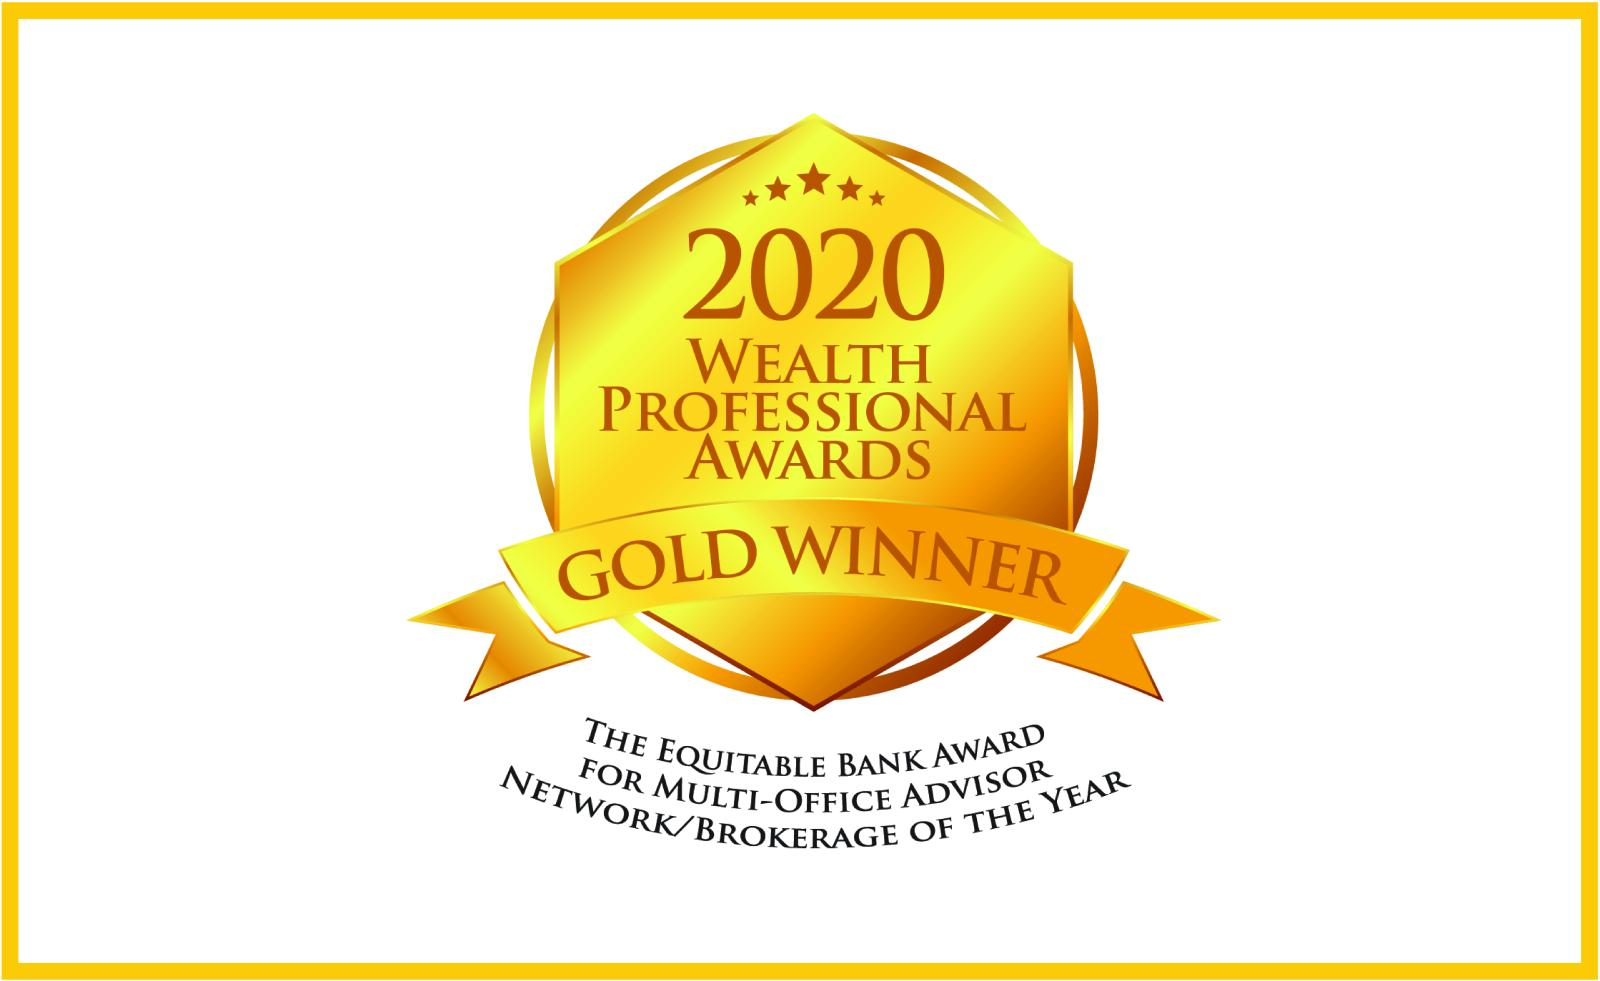 Wealth Professional Award, 2020